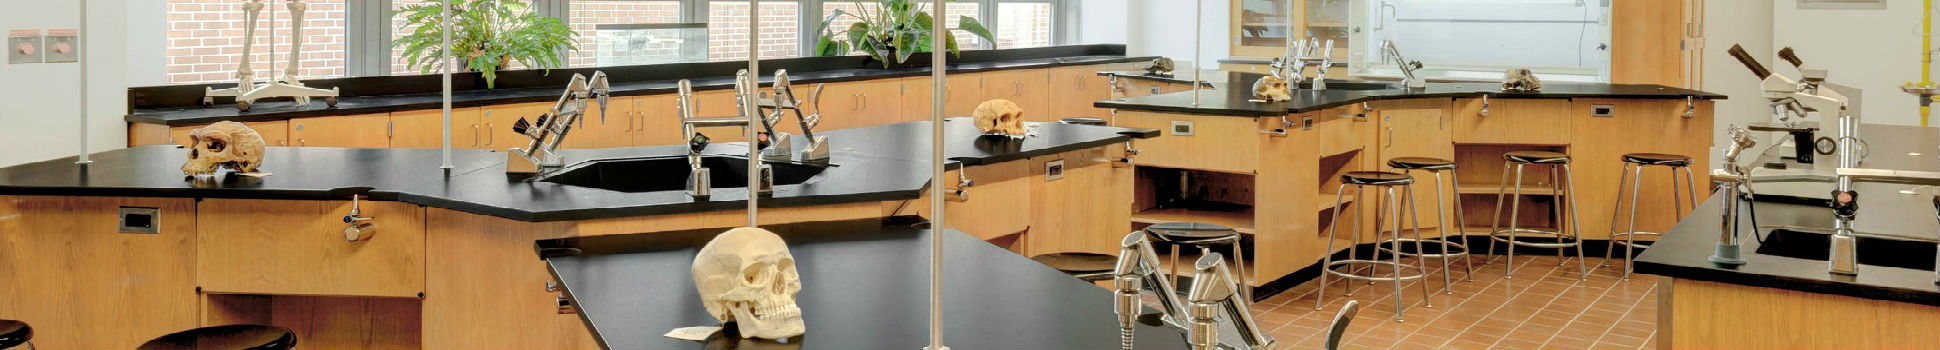 Middle College Campus Science Room - Queens